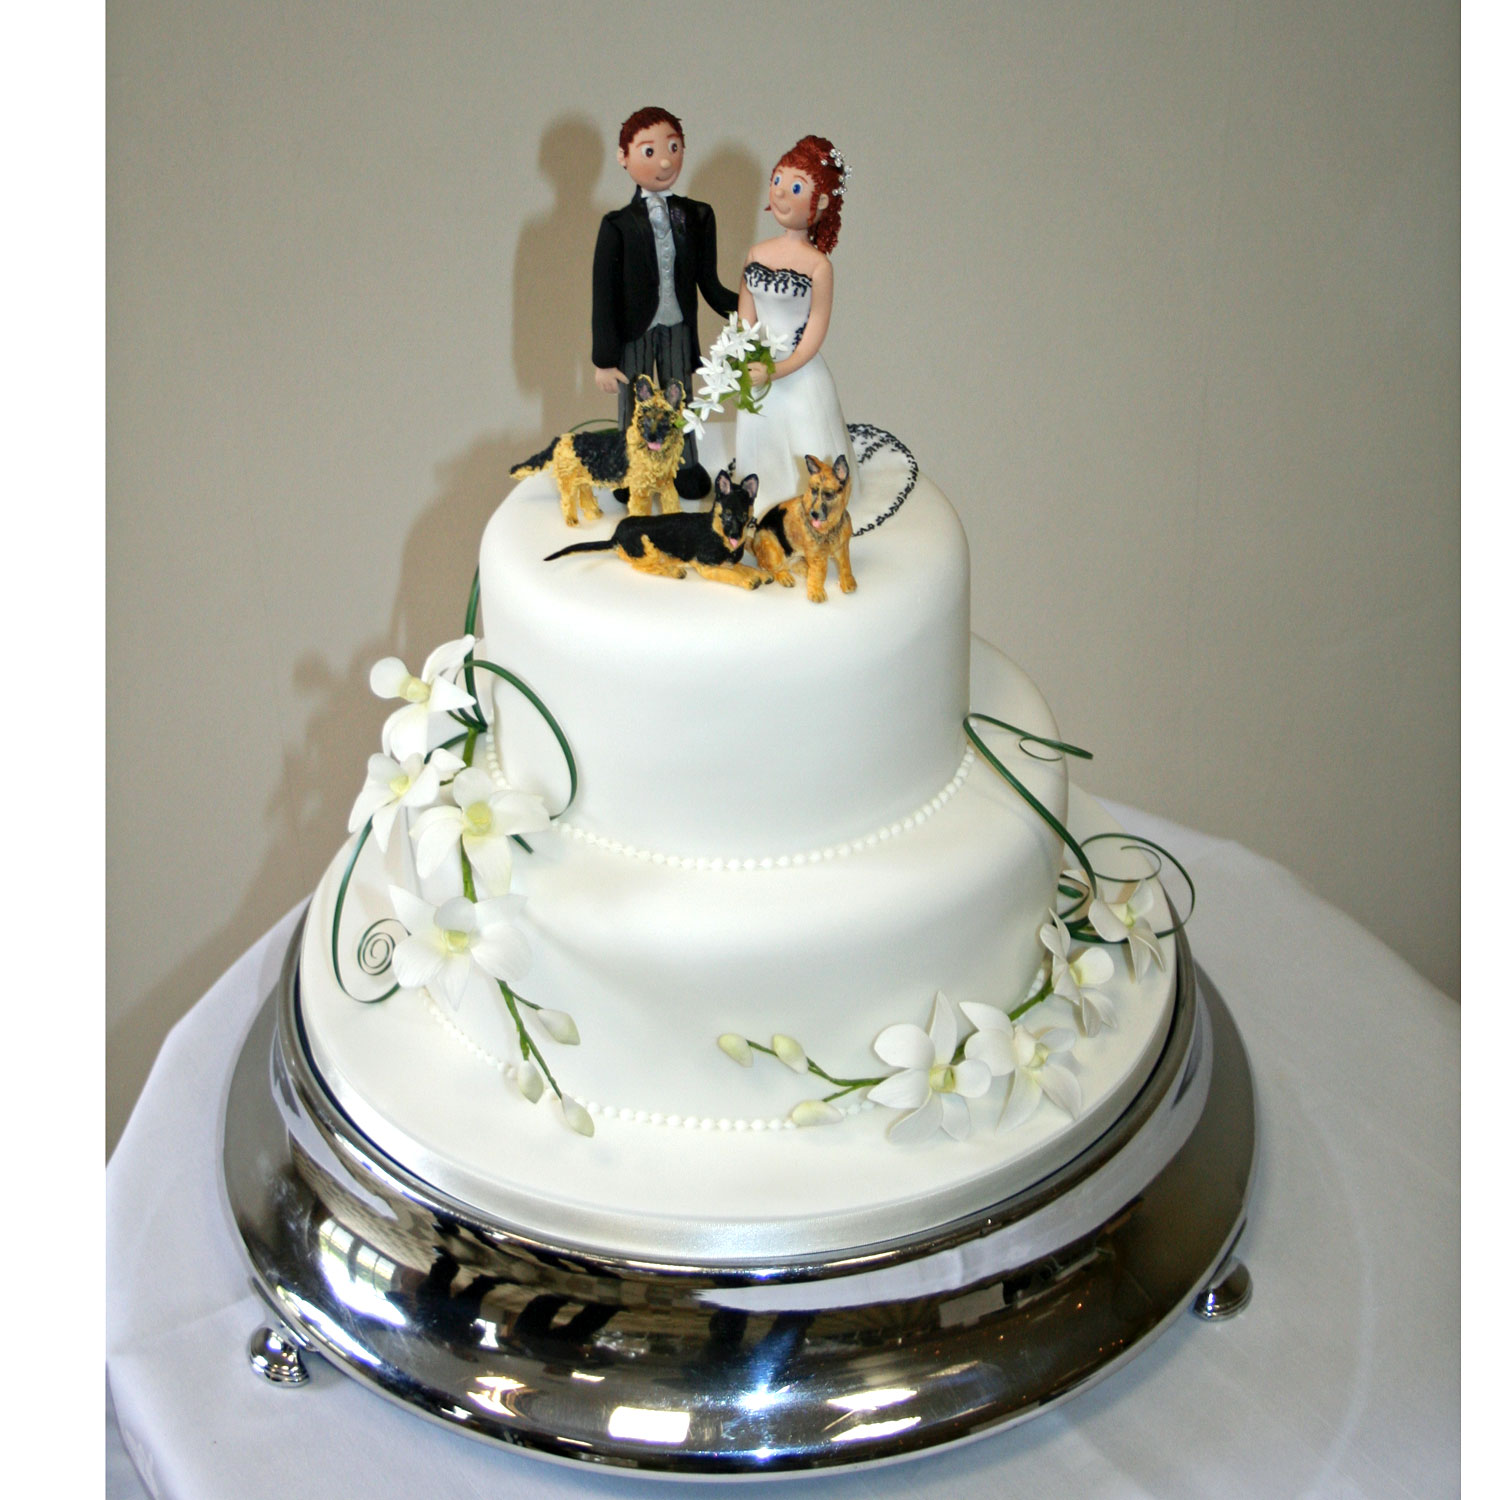 Sheperds Bespoke Wedding Cakes with Personalised Bride and Groom ...